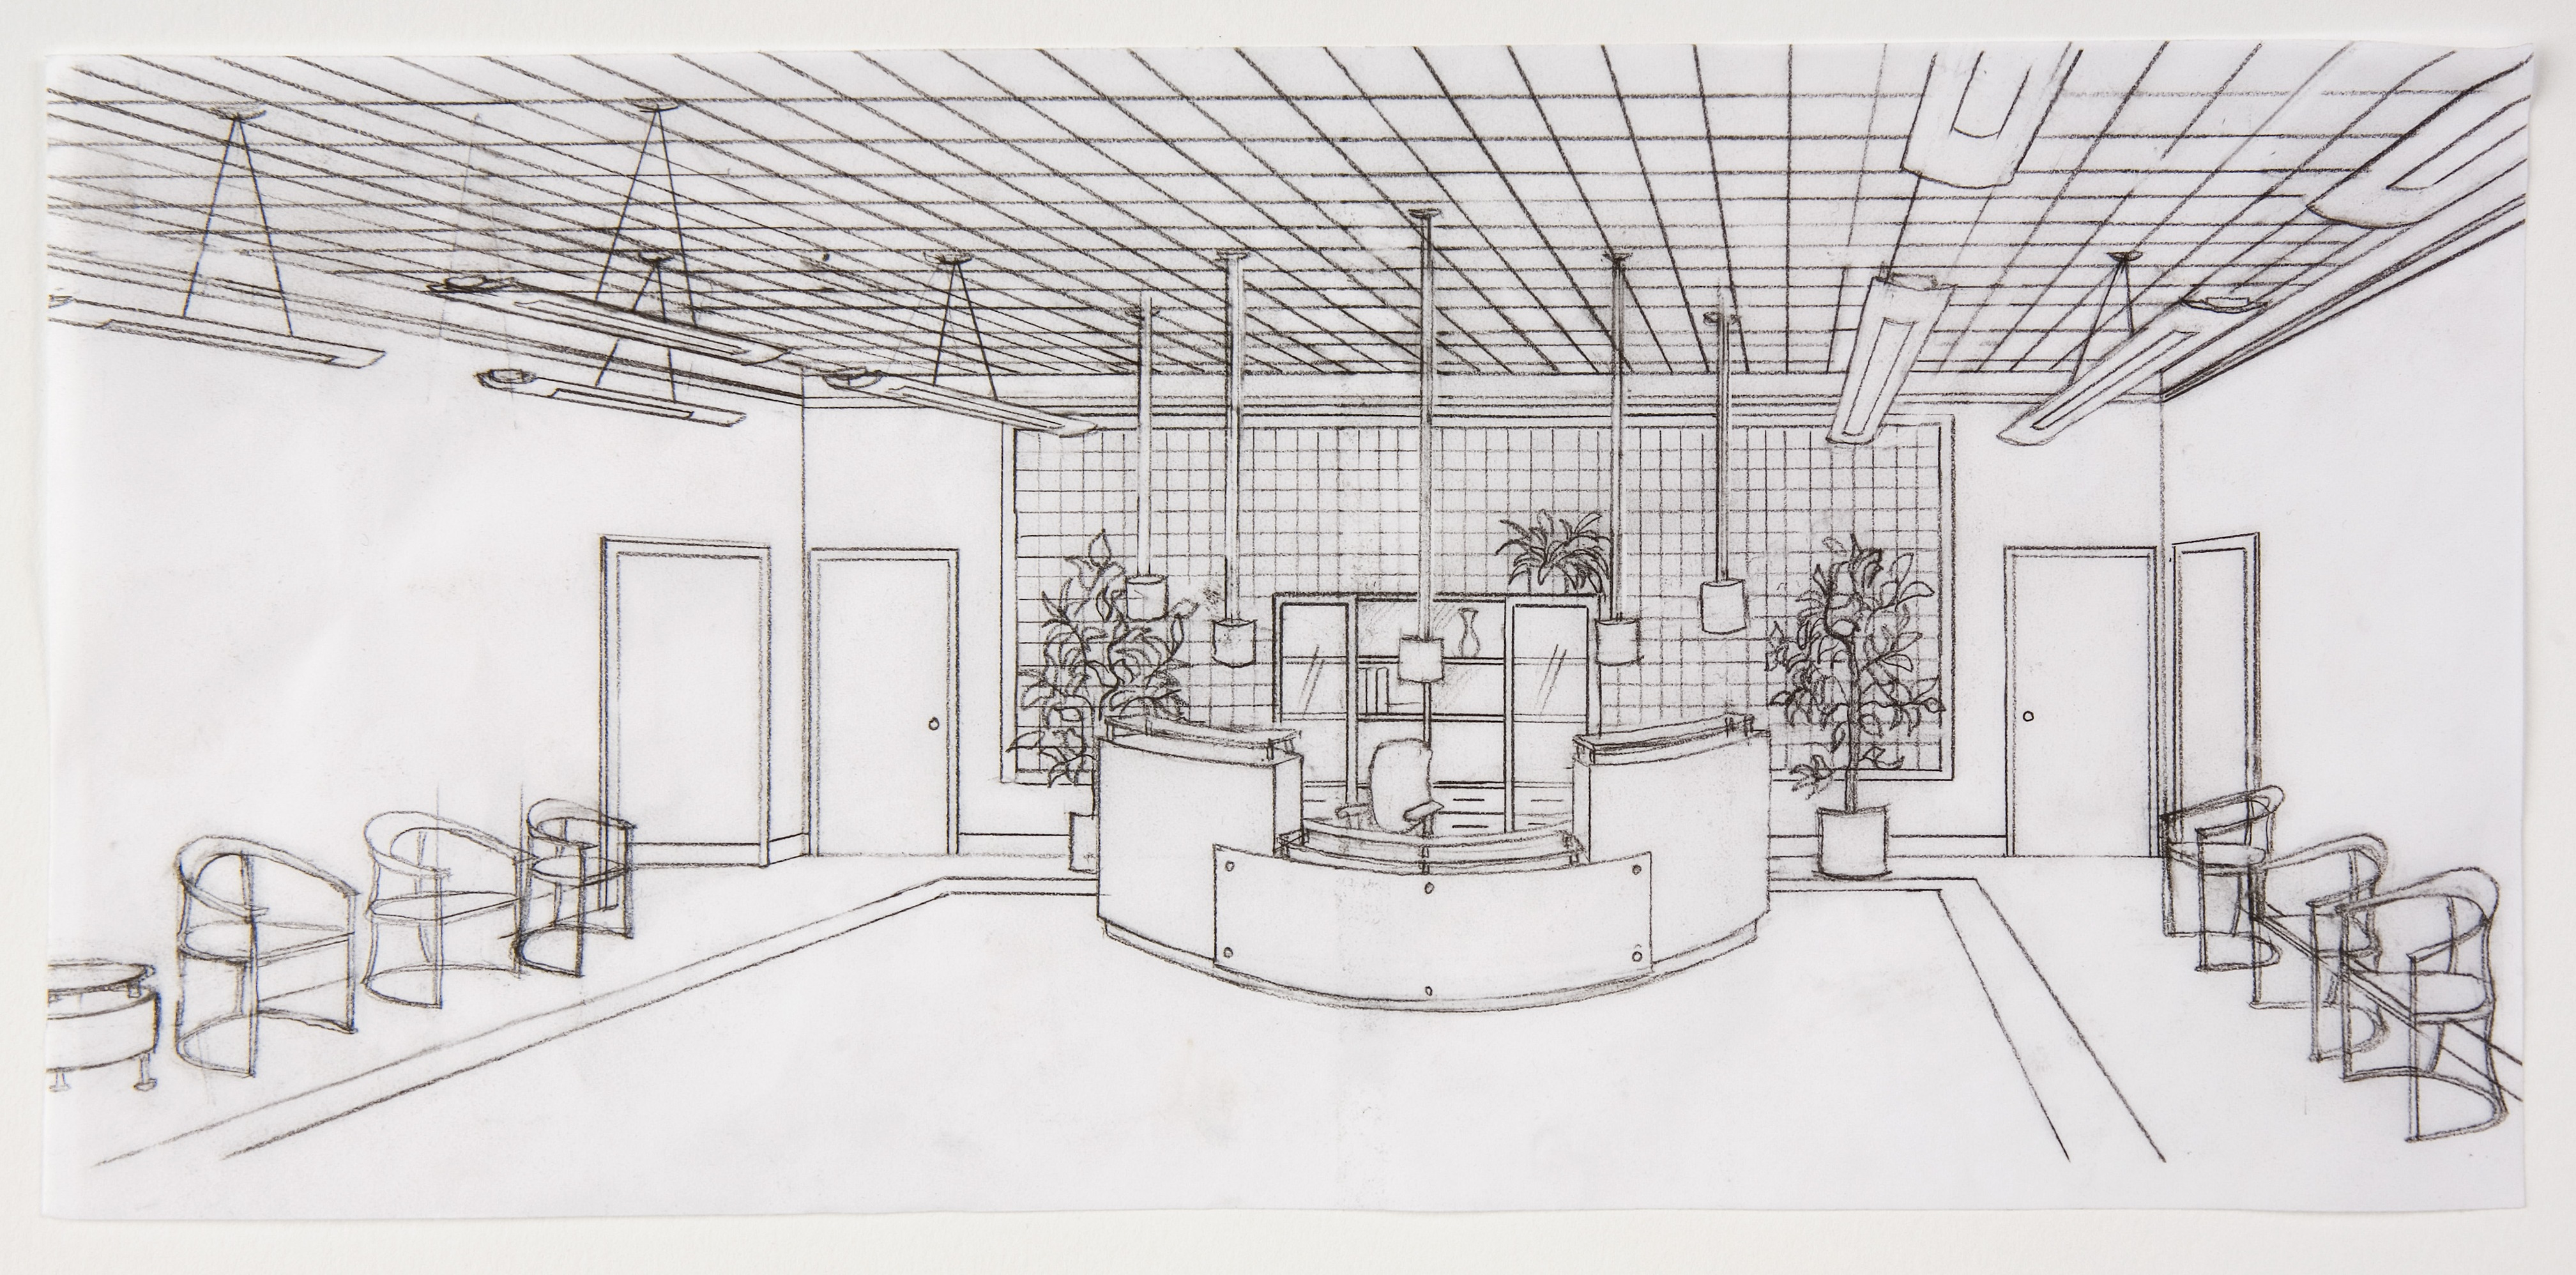 Drawn office perspective drawing Drawn Hand Coroflot State Perspective